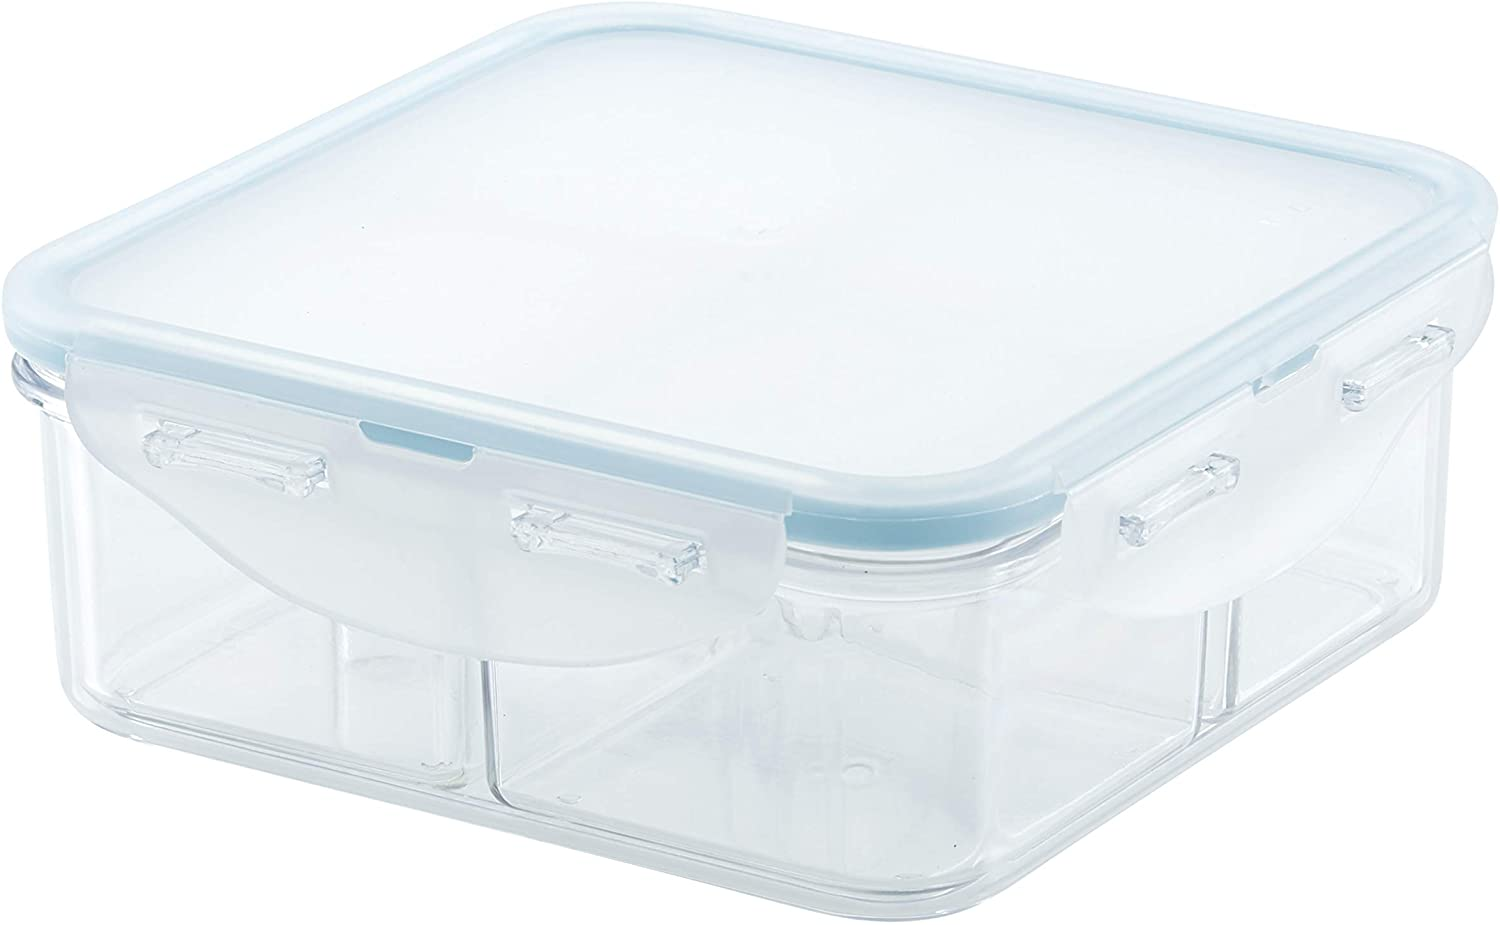 LOCK & LOCK Purely Better Tritan Container/Rectangle Food Storage Bin